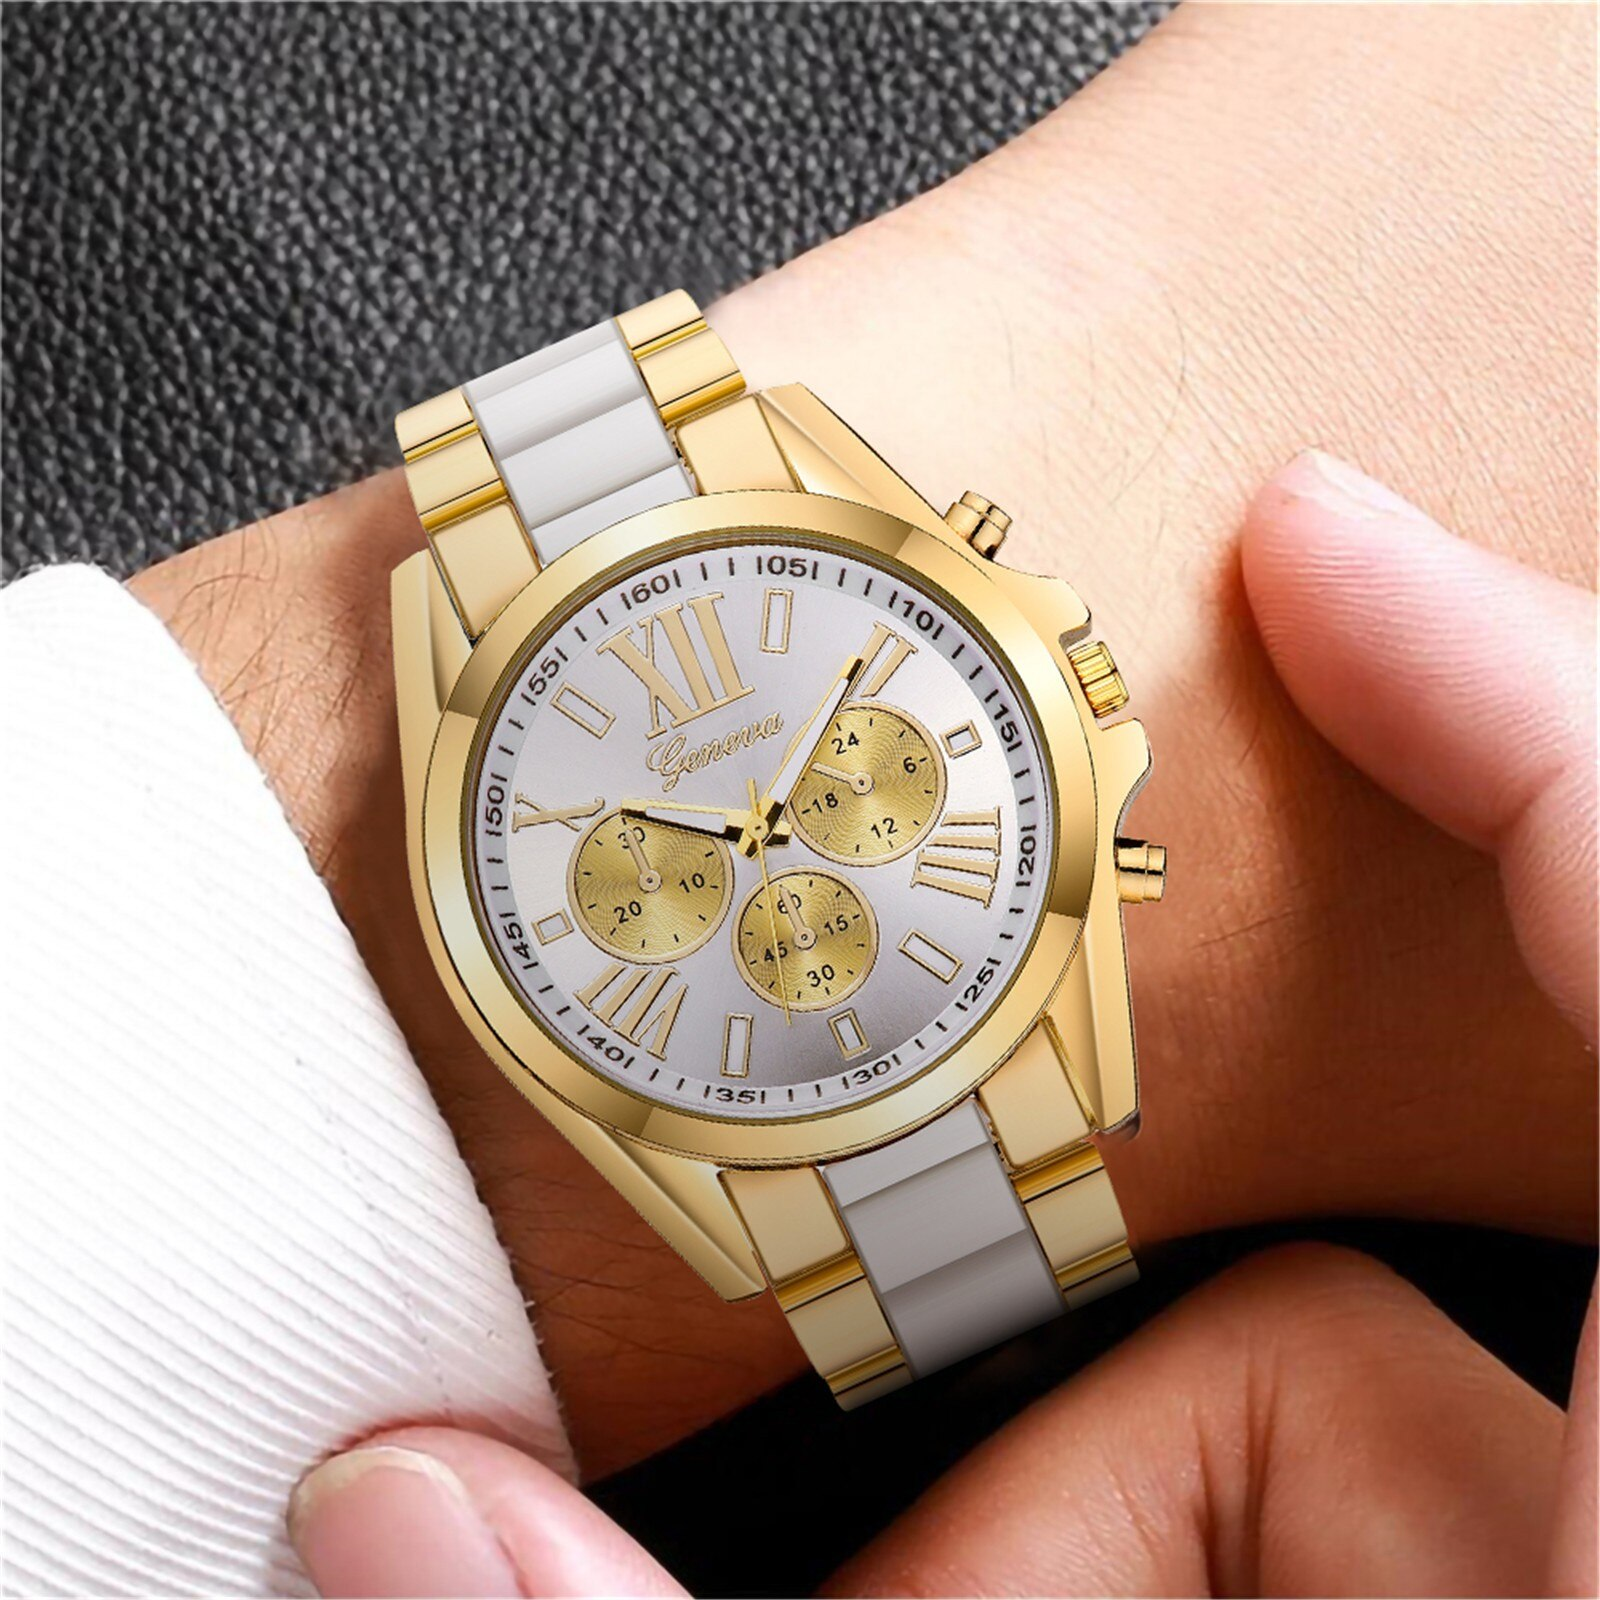 Hb63a404dd44e43b390863e94887f45ad6 - Fashion Luxury Watches for Men Casual Quartz Stainless Steel Band Diamonds Business Watch relogio masculino часы мужские#40